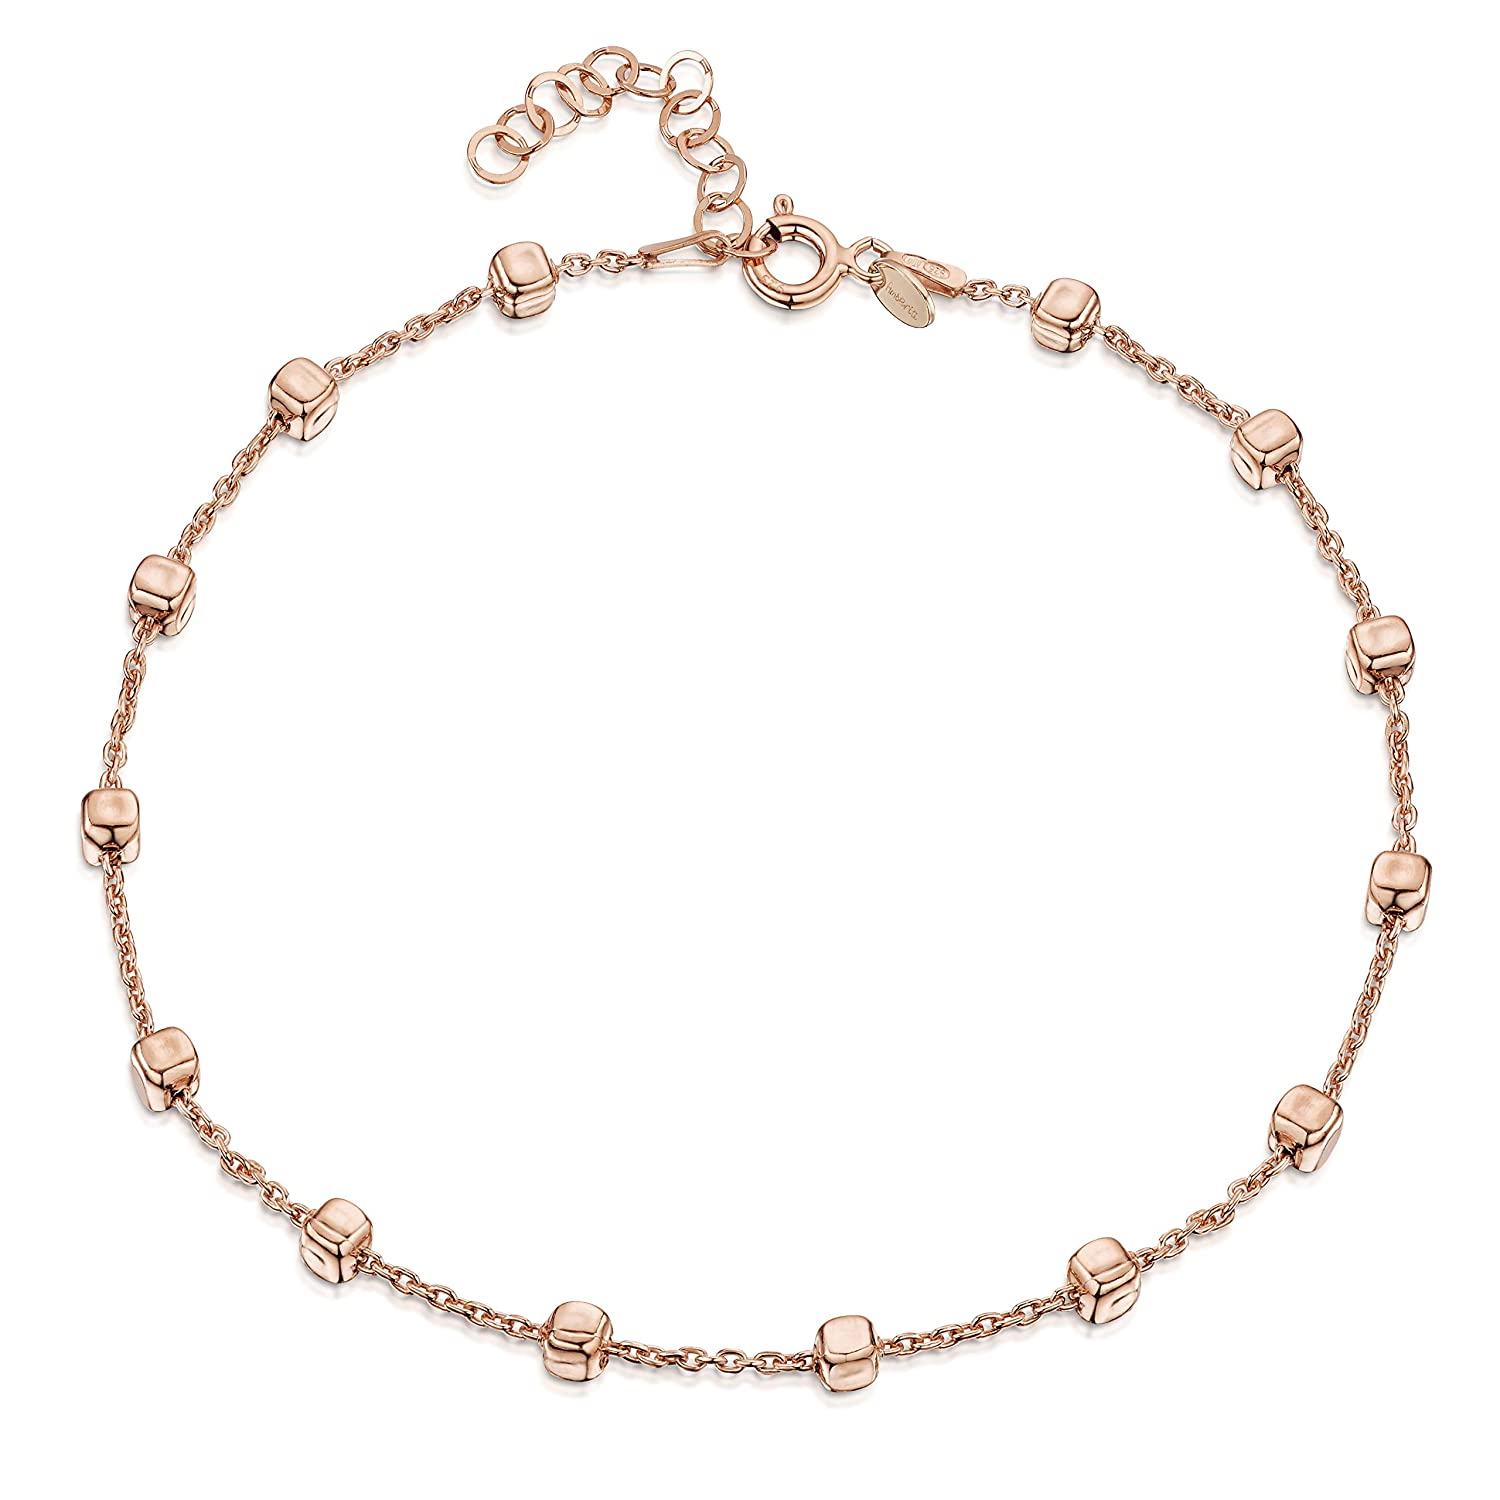 14K Rose Gold Plated on 925 Sterling Silver Adjustable Anklet Flexible Fit 9 to 10 inch Classic Chain Ankle Bracelets